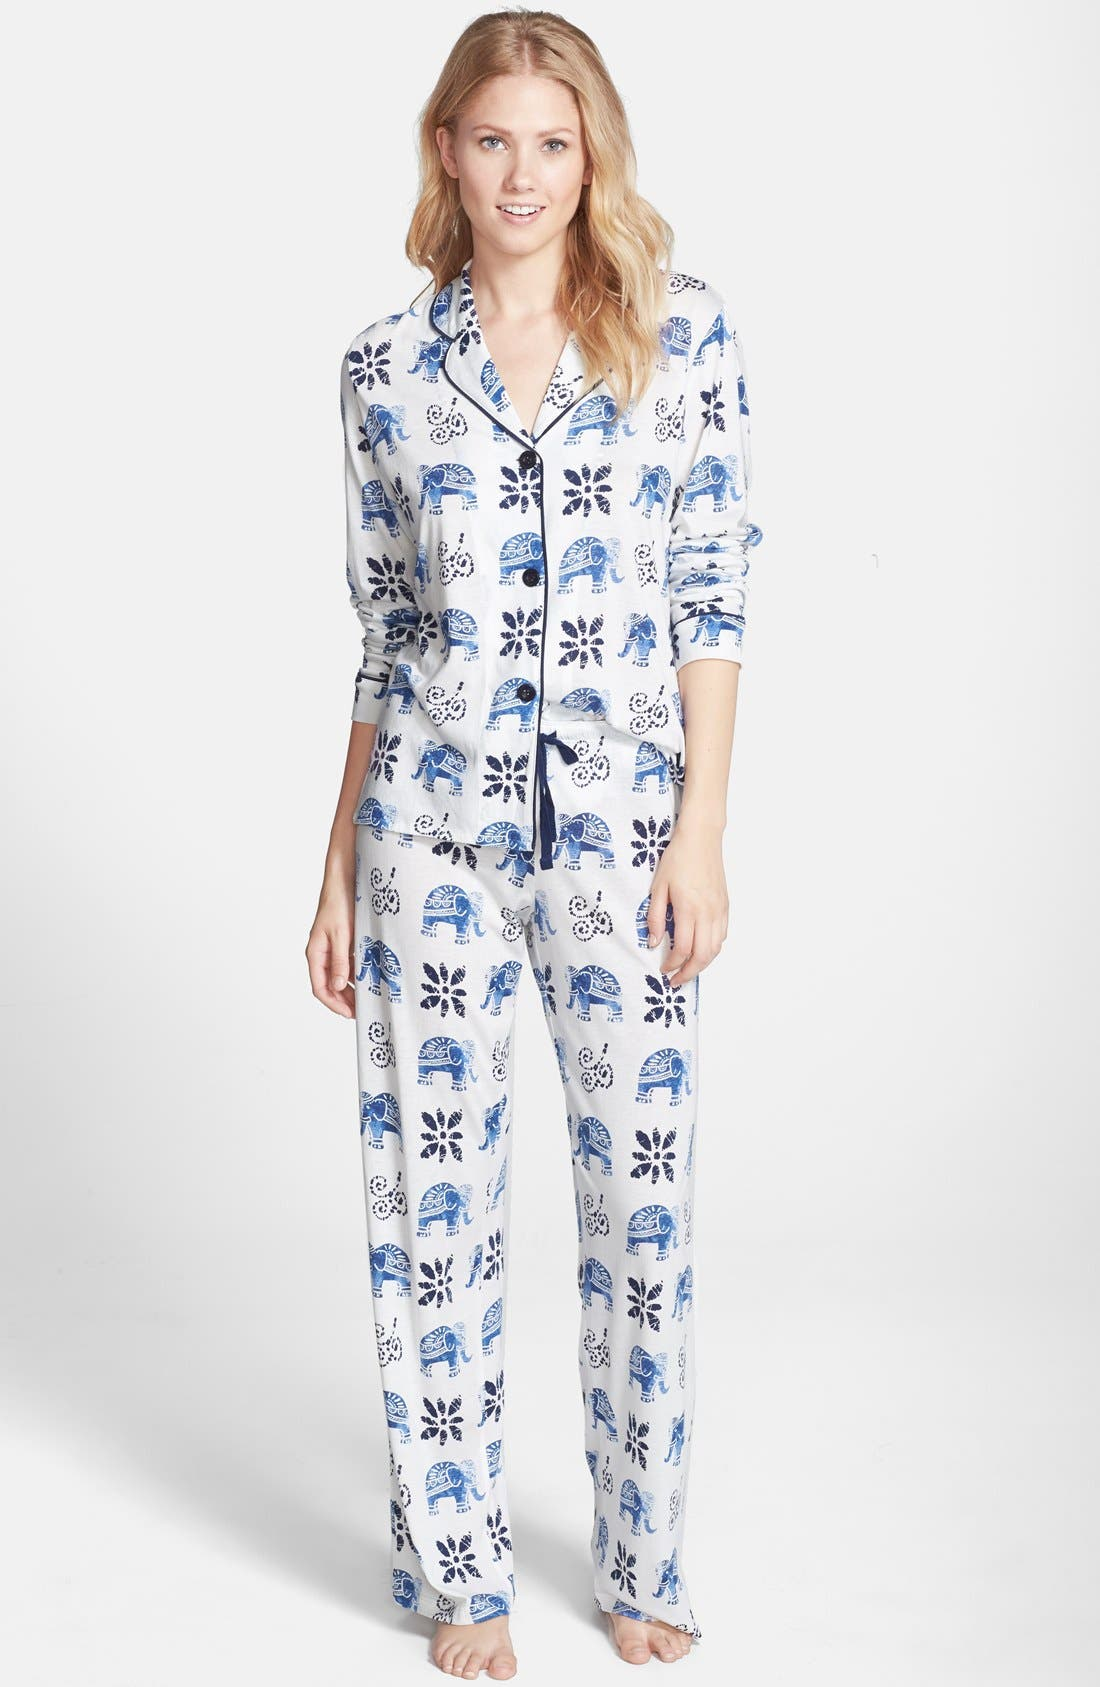 Elephant Print Jersey Pajamas,                             Main thumbnail 1, color,                             900